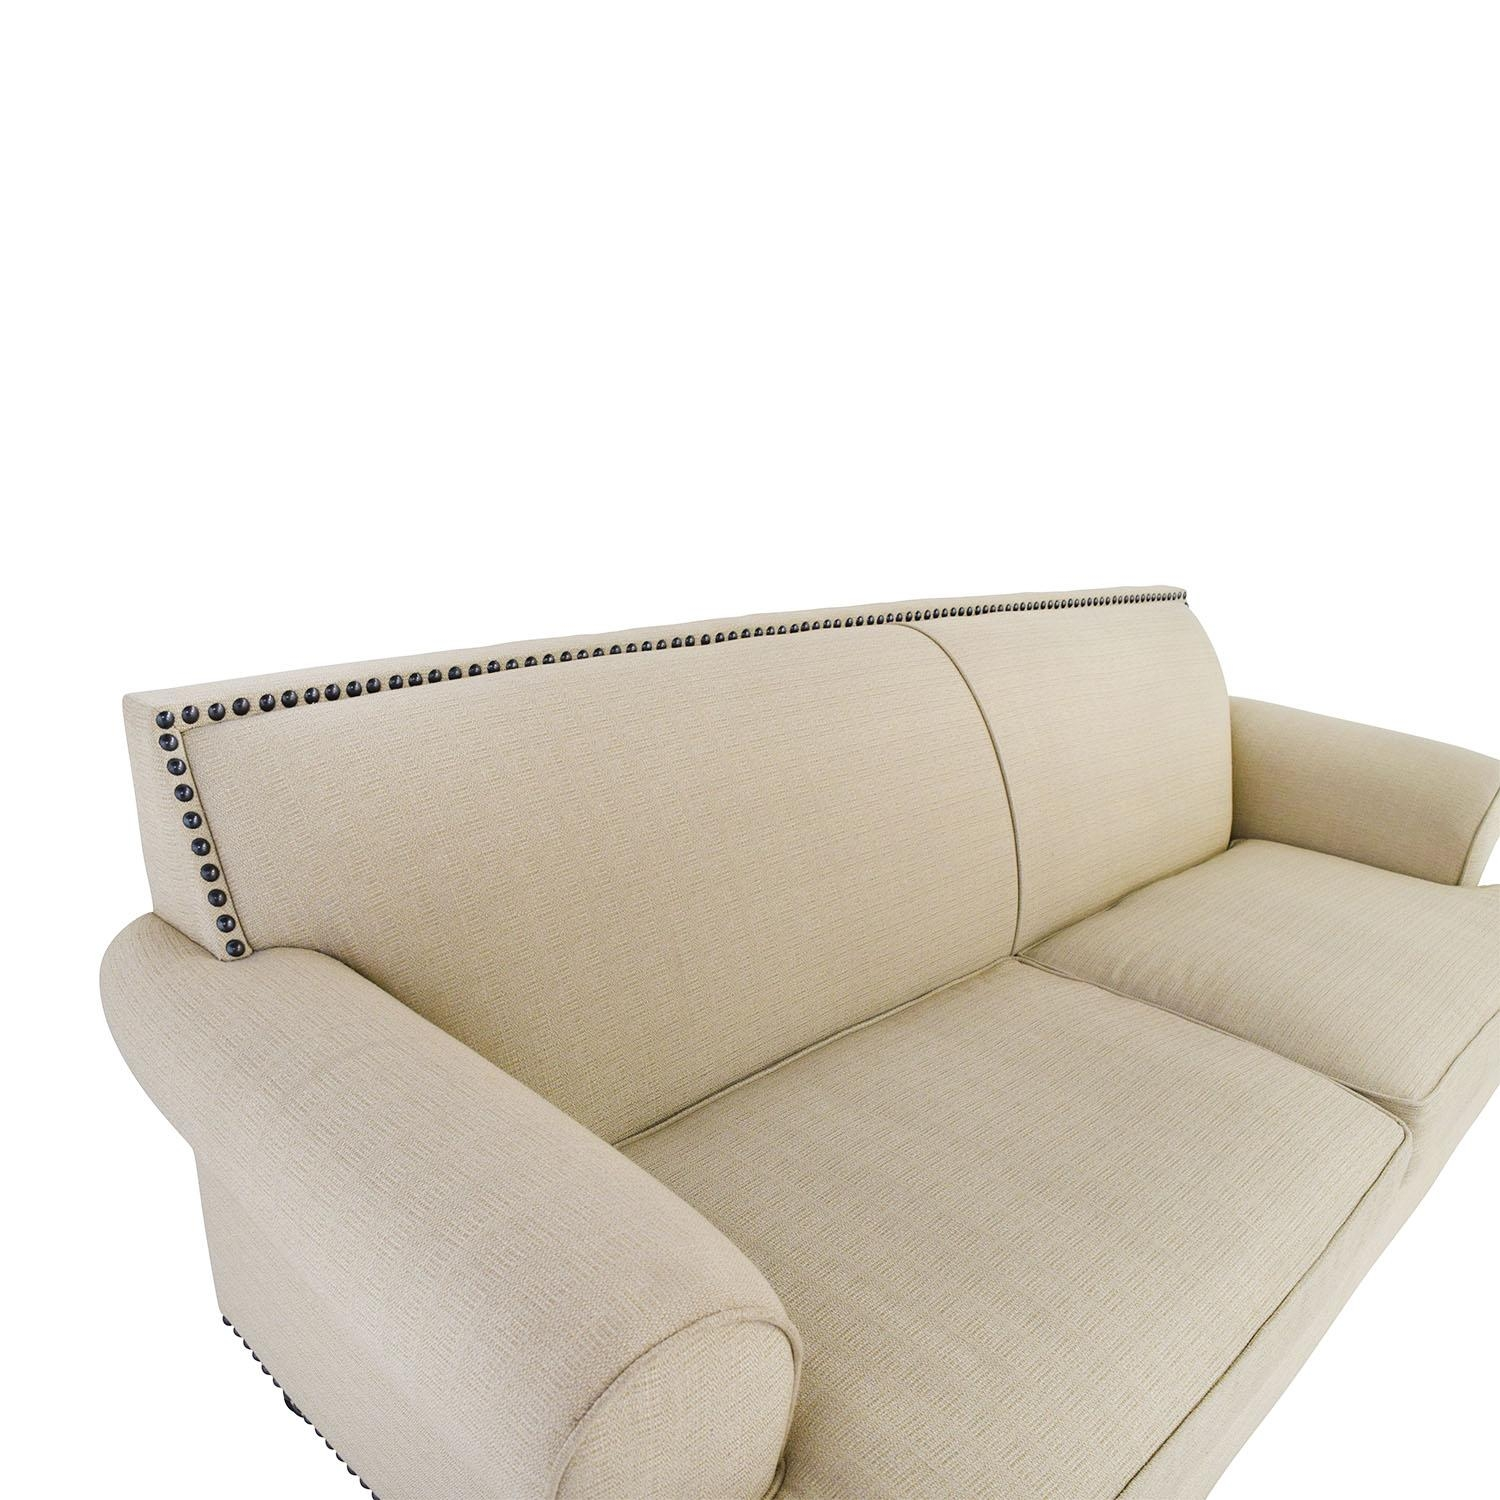 48% Off – Pier 1 Pier 1 Carmen Tan Couch With Studs / Sofas Intended For Pier 1 Sofa Beds (Image 3 of 20)